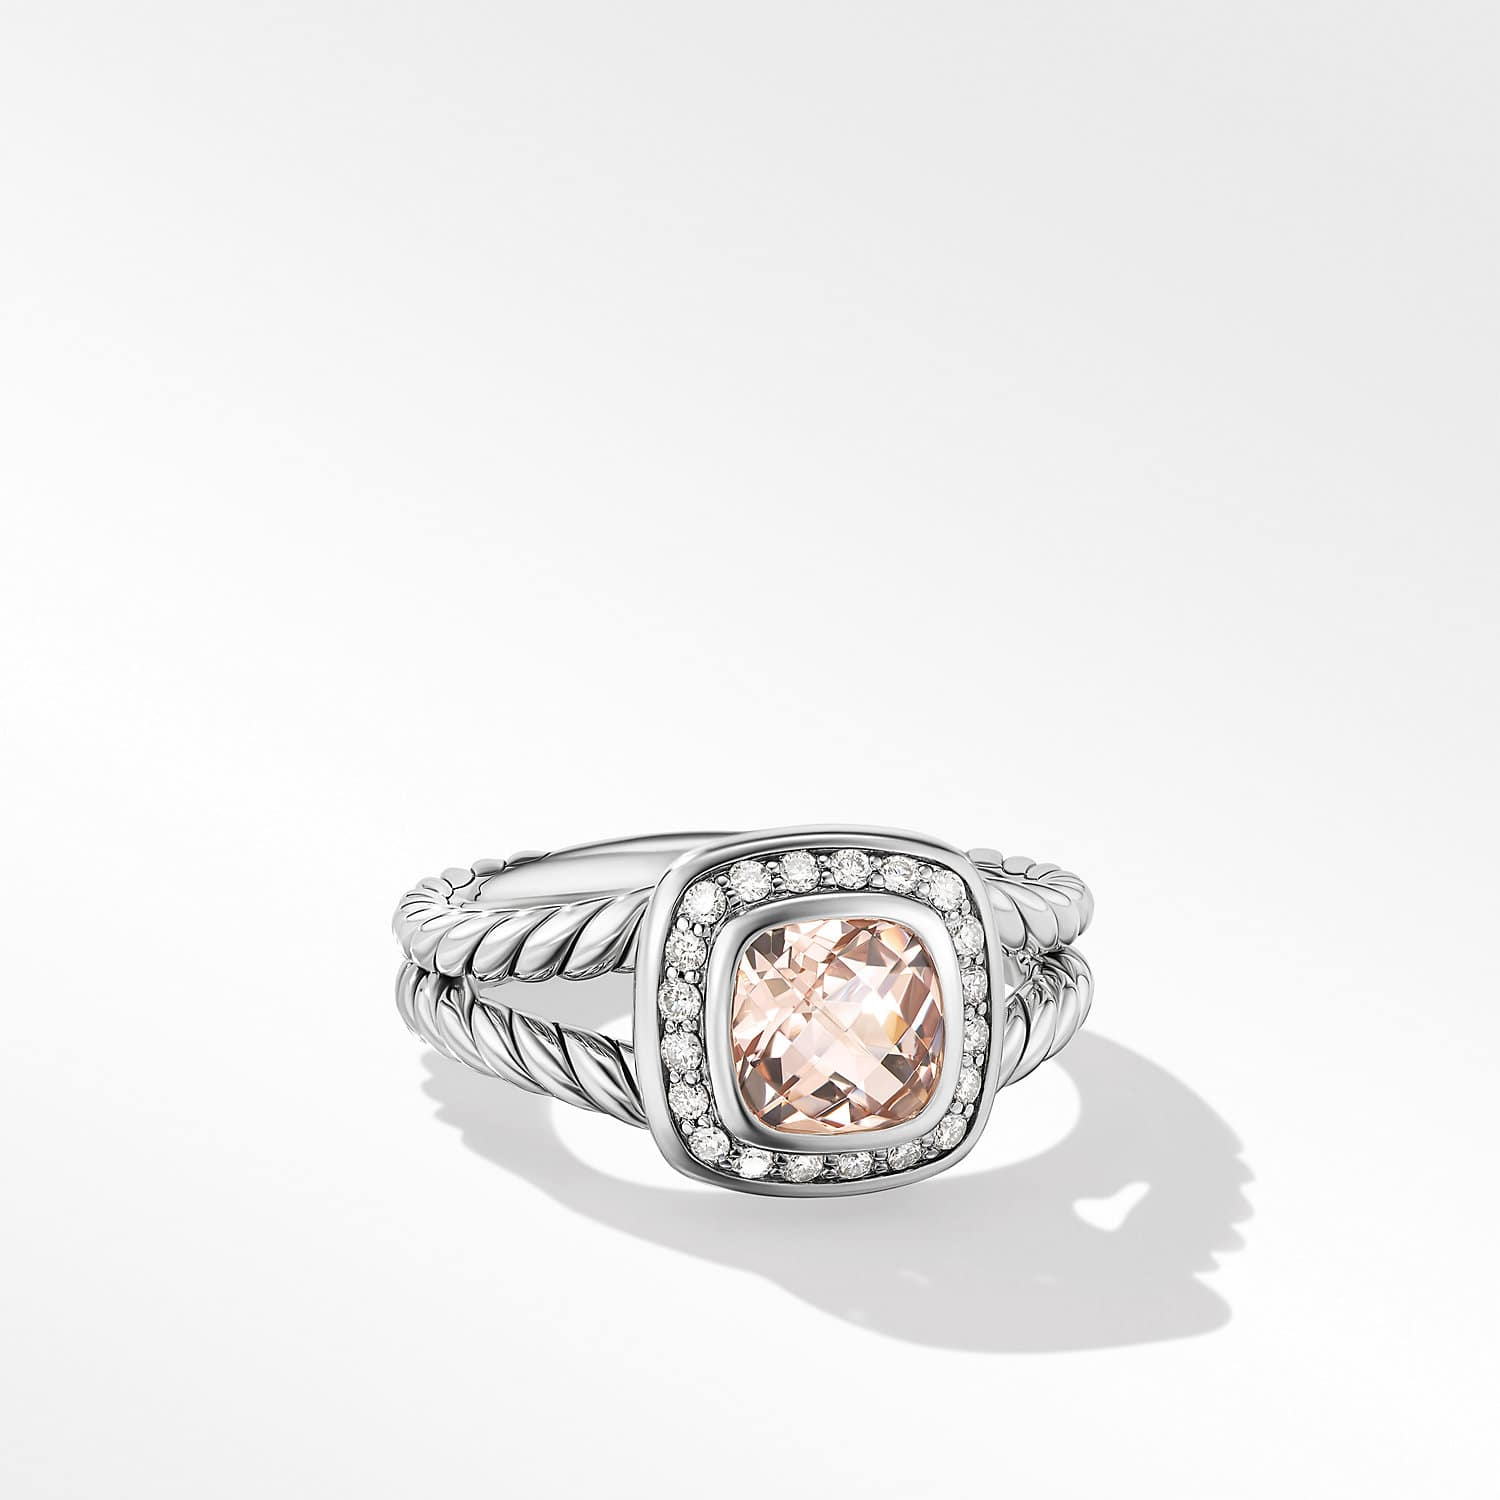 ae49c2f9eac0b0 Petite Albion® Ring with Morganite and Diamonds Product Image